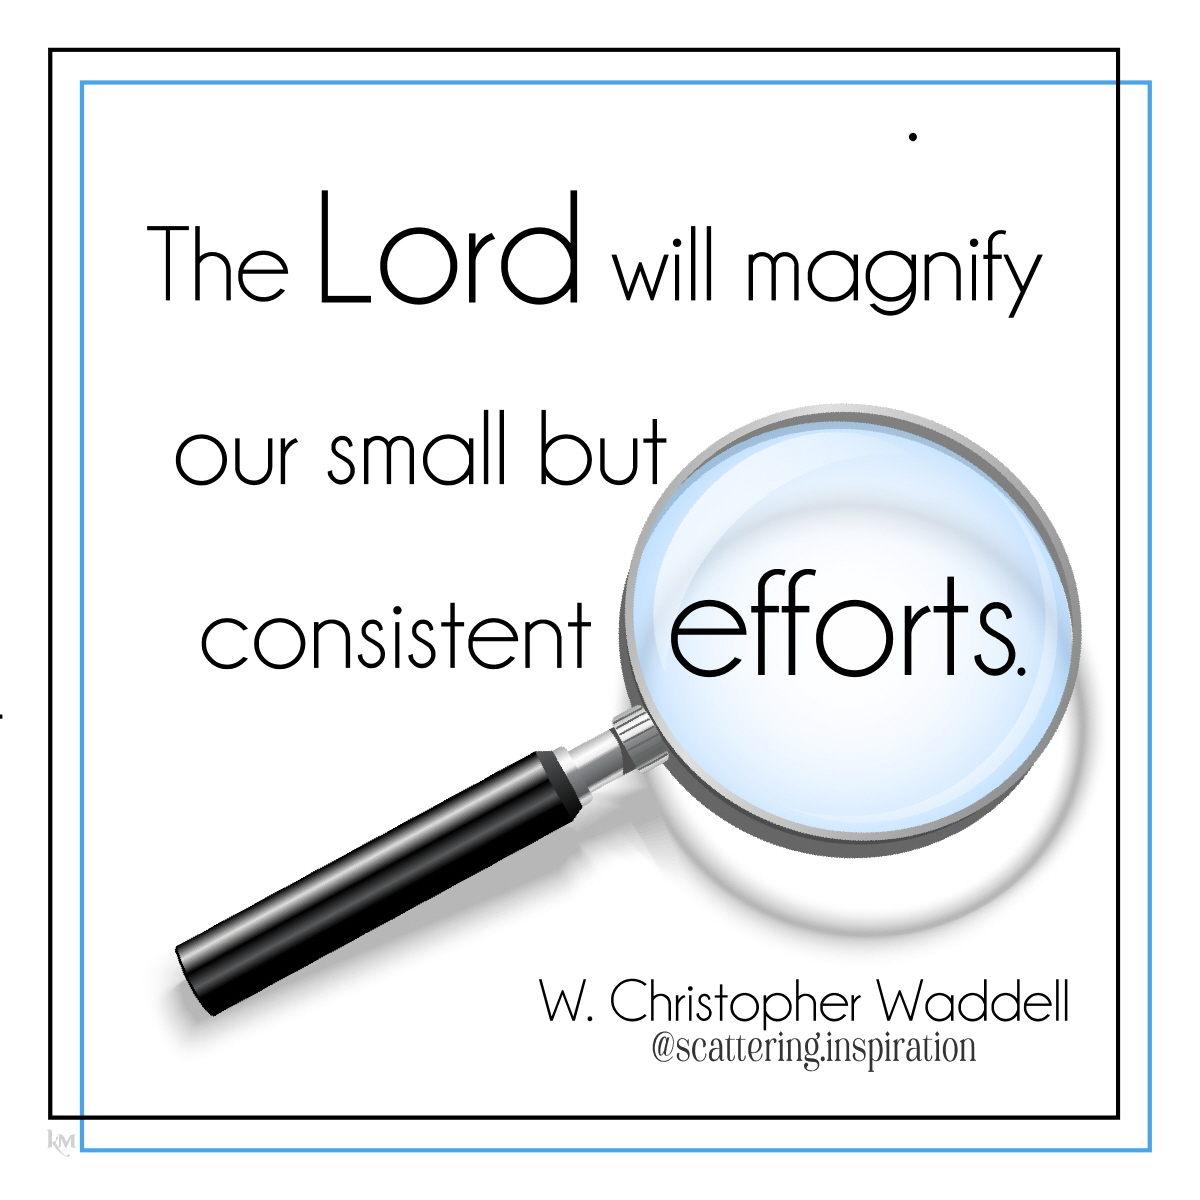 the Lord will magnify